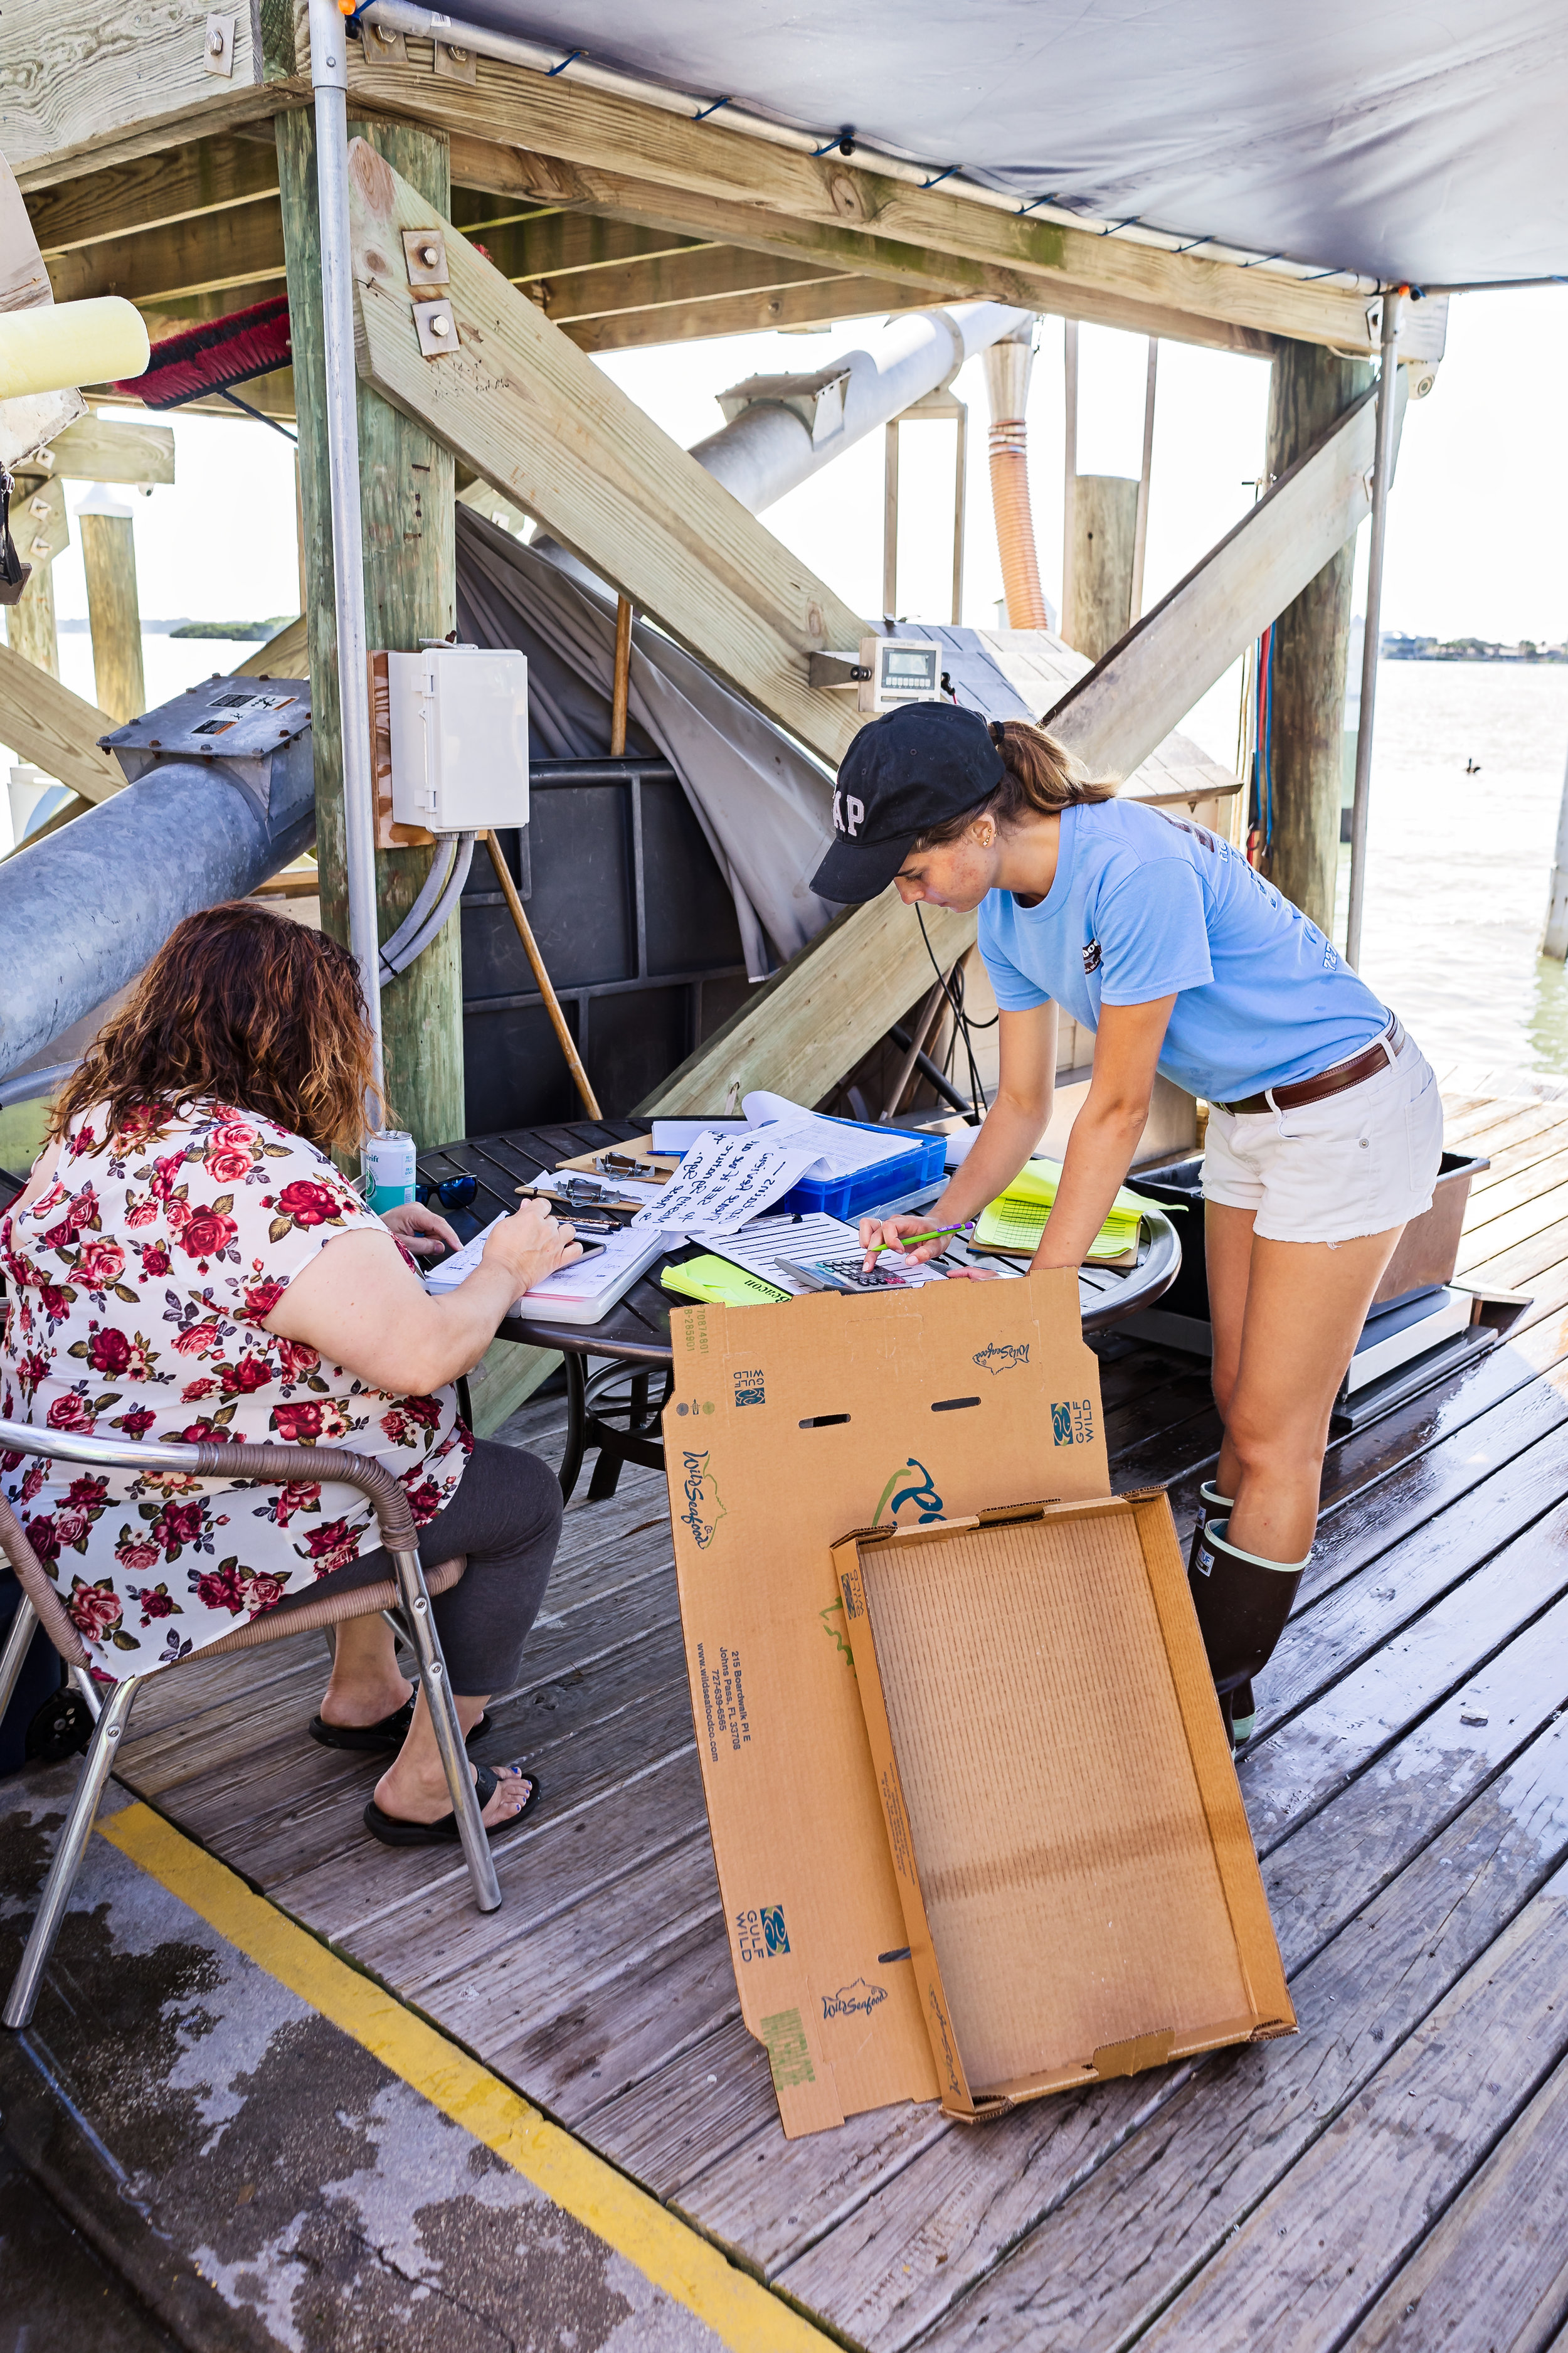 Erin Grebenev wrapping up paperwork for the day. Friday's catch totaled around 4,000 pounds of gulf fish.